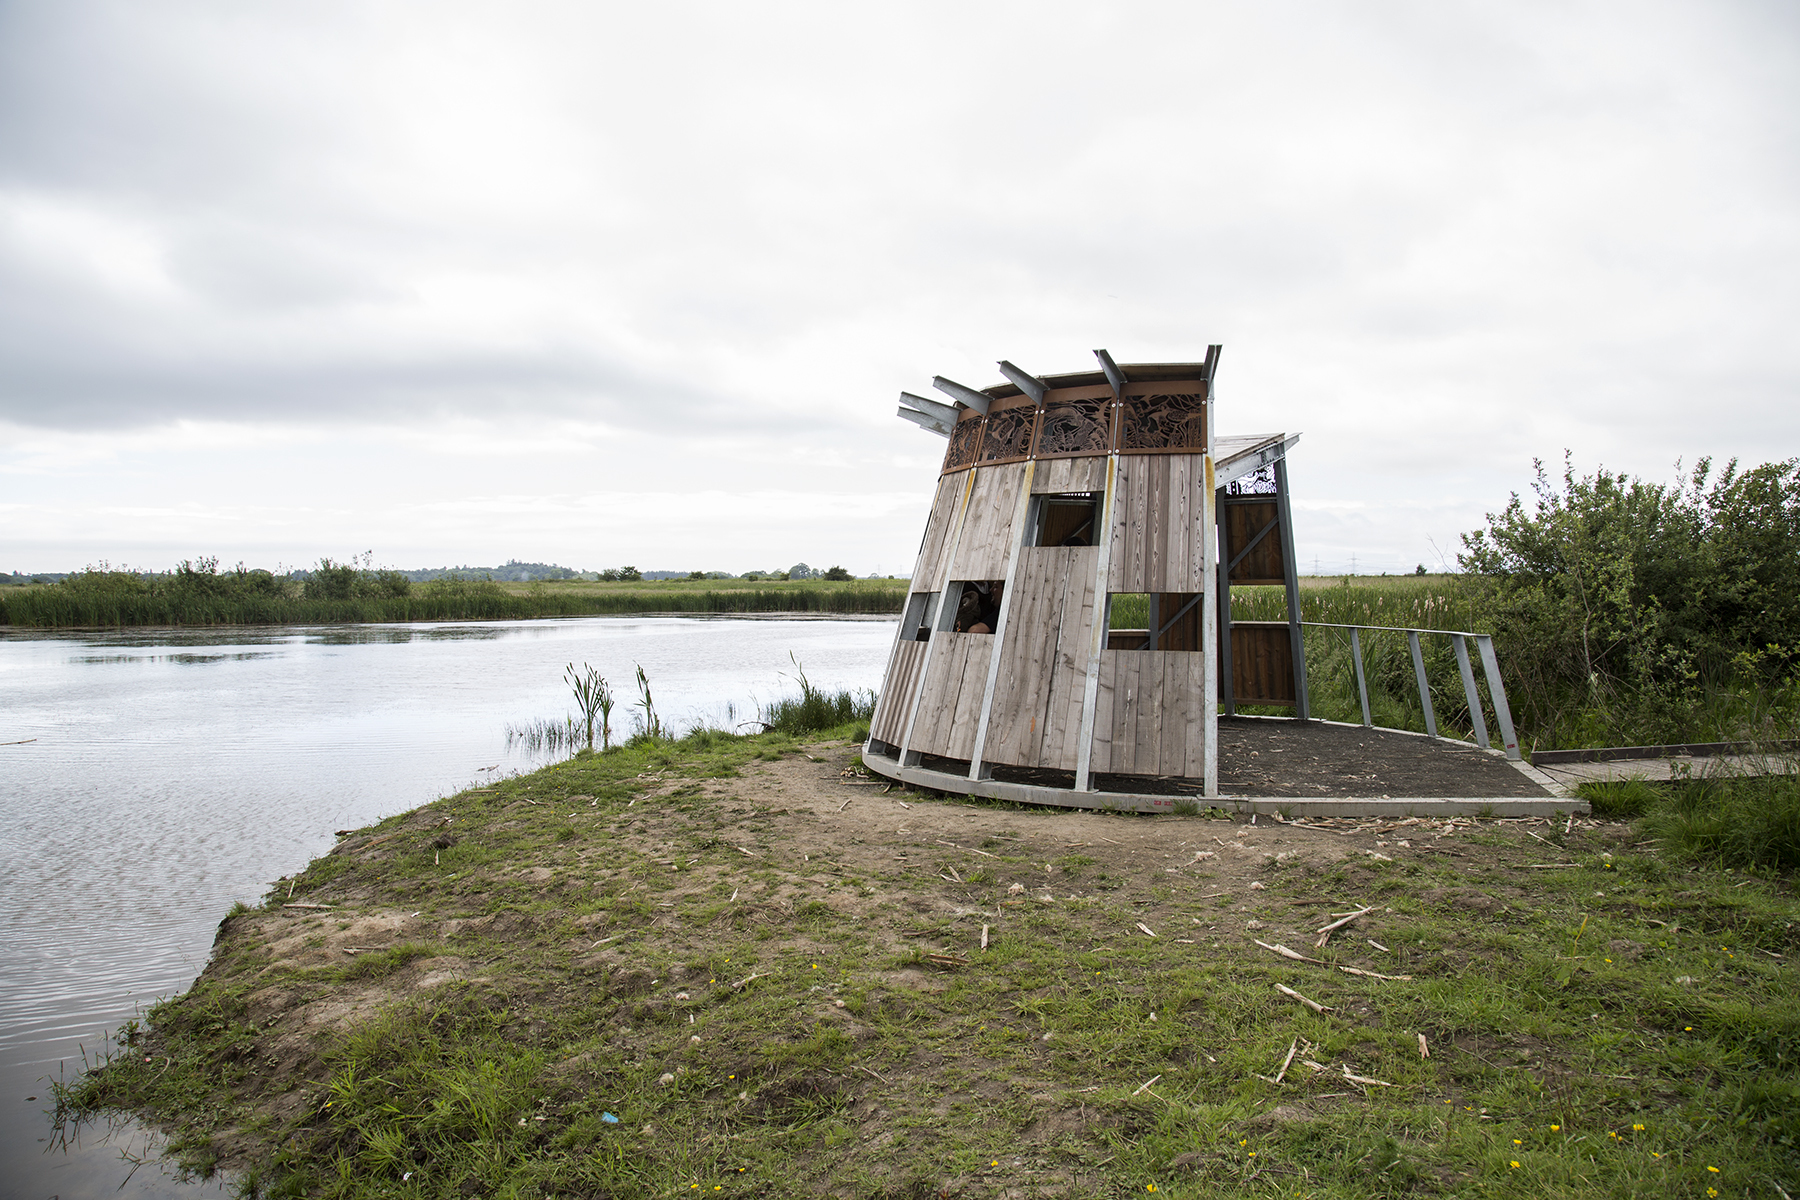 The viewing platform at RSPB Black Devon site. Picture by Ann Callaghan